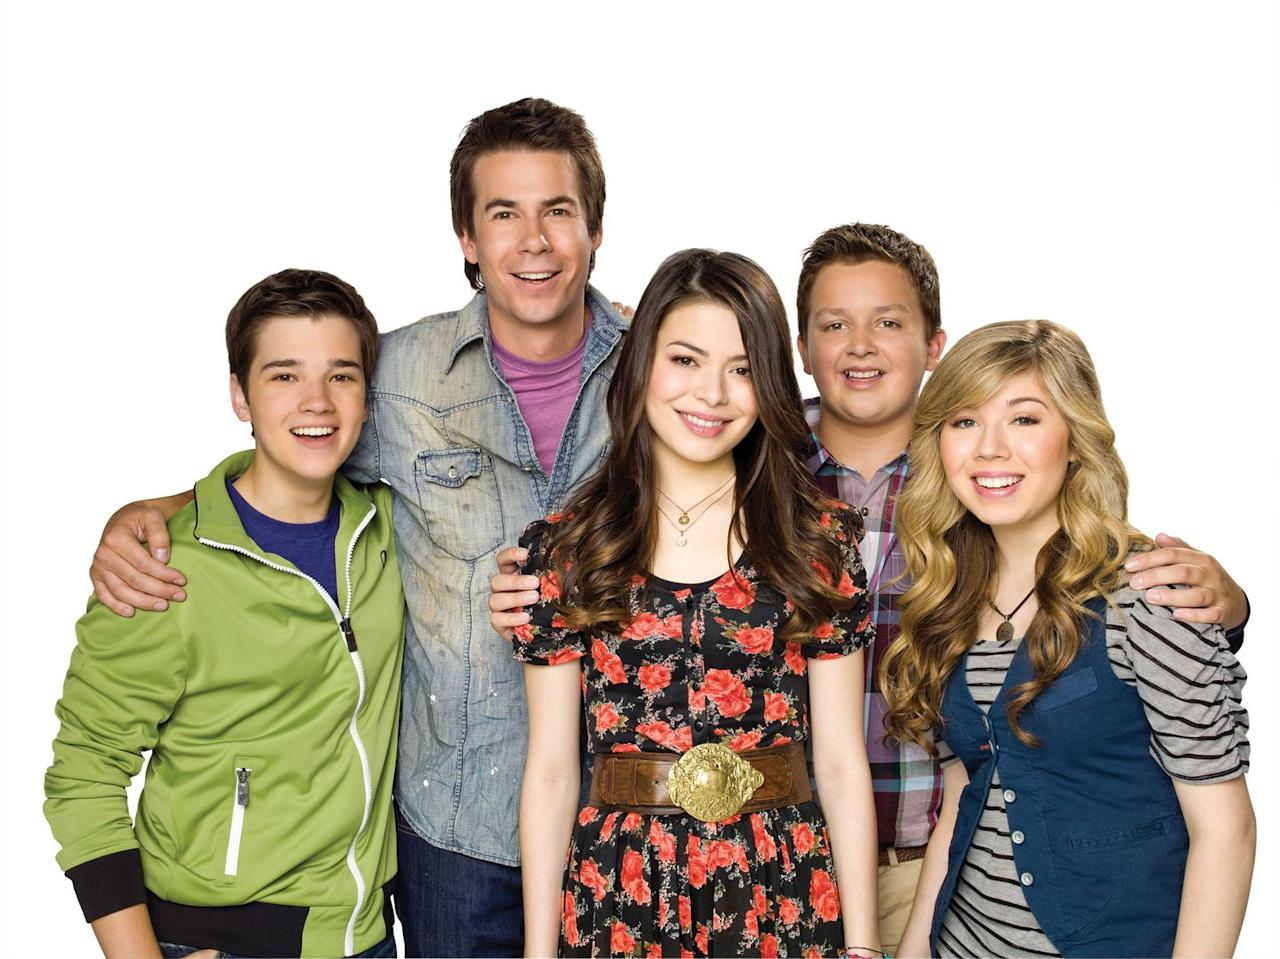 "<p>Before Nathan Kress was Freddie Benson on <em>iCarly</em>, he played an uncredited kid on the ""<a href=""https://fave.co/2Ijmrhr"" target=""_blank"">Battle of Panthatar</a>"" episode of <em>Drake & Josh</em>. However, he originally had a bigger role on the episode that involved him HITTING ON MIRANDA COSGROVE. (Well, hitting on her character, Megan.)</p><p>Dan Schneider, who created both <em>Drake & Josh</em> and <em>iCarly</em>, told <em>Seventeen</em> that on the episode, ""Megan goes to this cool party and there's this 'rich boy' who's shorter than her and looks about two years younger."" Basically, Nathan's character ""follow[ed] [Megan] around and tr[ied] to flirt with her.""</p><p>Nathan had about five lines, ""always coming up to Megan at the party, trying to flirt and impress her, [but] she's not interested.""</p><p>When it came time to edit the episode, Dan was also in the process of creating the <em>iCarly</em> pilot, on which Nathan had already been cast to play Freddie - a kid who's constantly trying to impress and flirt with Carly.</p><p>Dan wanted that relationship to be ""fresh and new in <em>iCarly</em>,"" so he edited out Nathan's part in the <em>Drake & Josh</em> episode, though <a href=""http://www.mtv.com/news/3016103/nick-stars-on-other-nick-shows/"" target=""_blank"">you can still see him</a> in a couple of shots.</p><p><strong></strong><a href=""https://www.seventeen.com/celebrity/movies-tv/a23080696/icarly-trivia-quiz/"" target=""_blank""><strong>MORE:</strong> The Ultimate <em>iCarly</em> Trivia Quiz</a></p>"